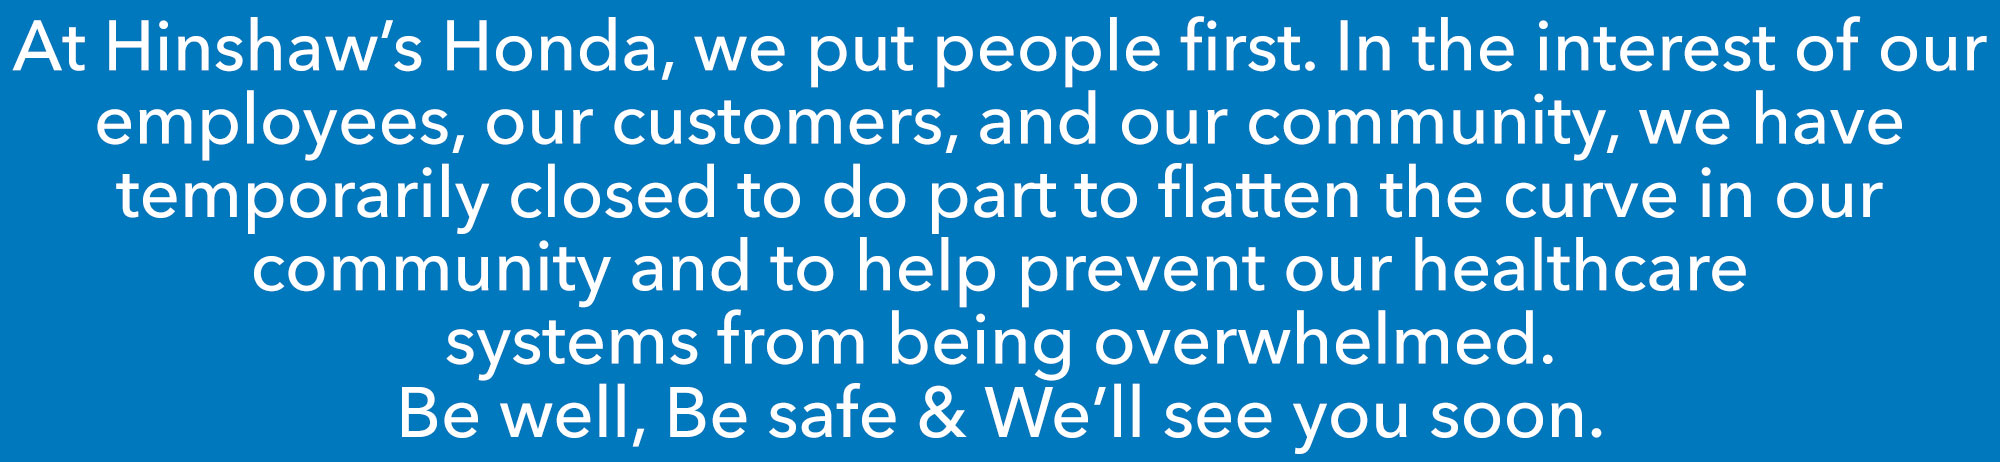 At Hinshaw's Honda, we put people first. In the interest of our employees, our customers, and our community, we have temporarily closed to do our part to flatten the curve in our community and to help prevent our healthcare systems from being overwhelmed. Be Well, Be Safe, & We'll See You Soon.